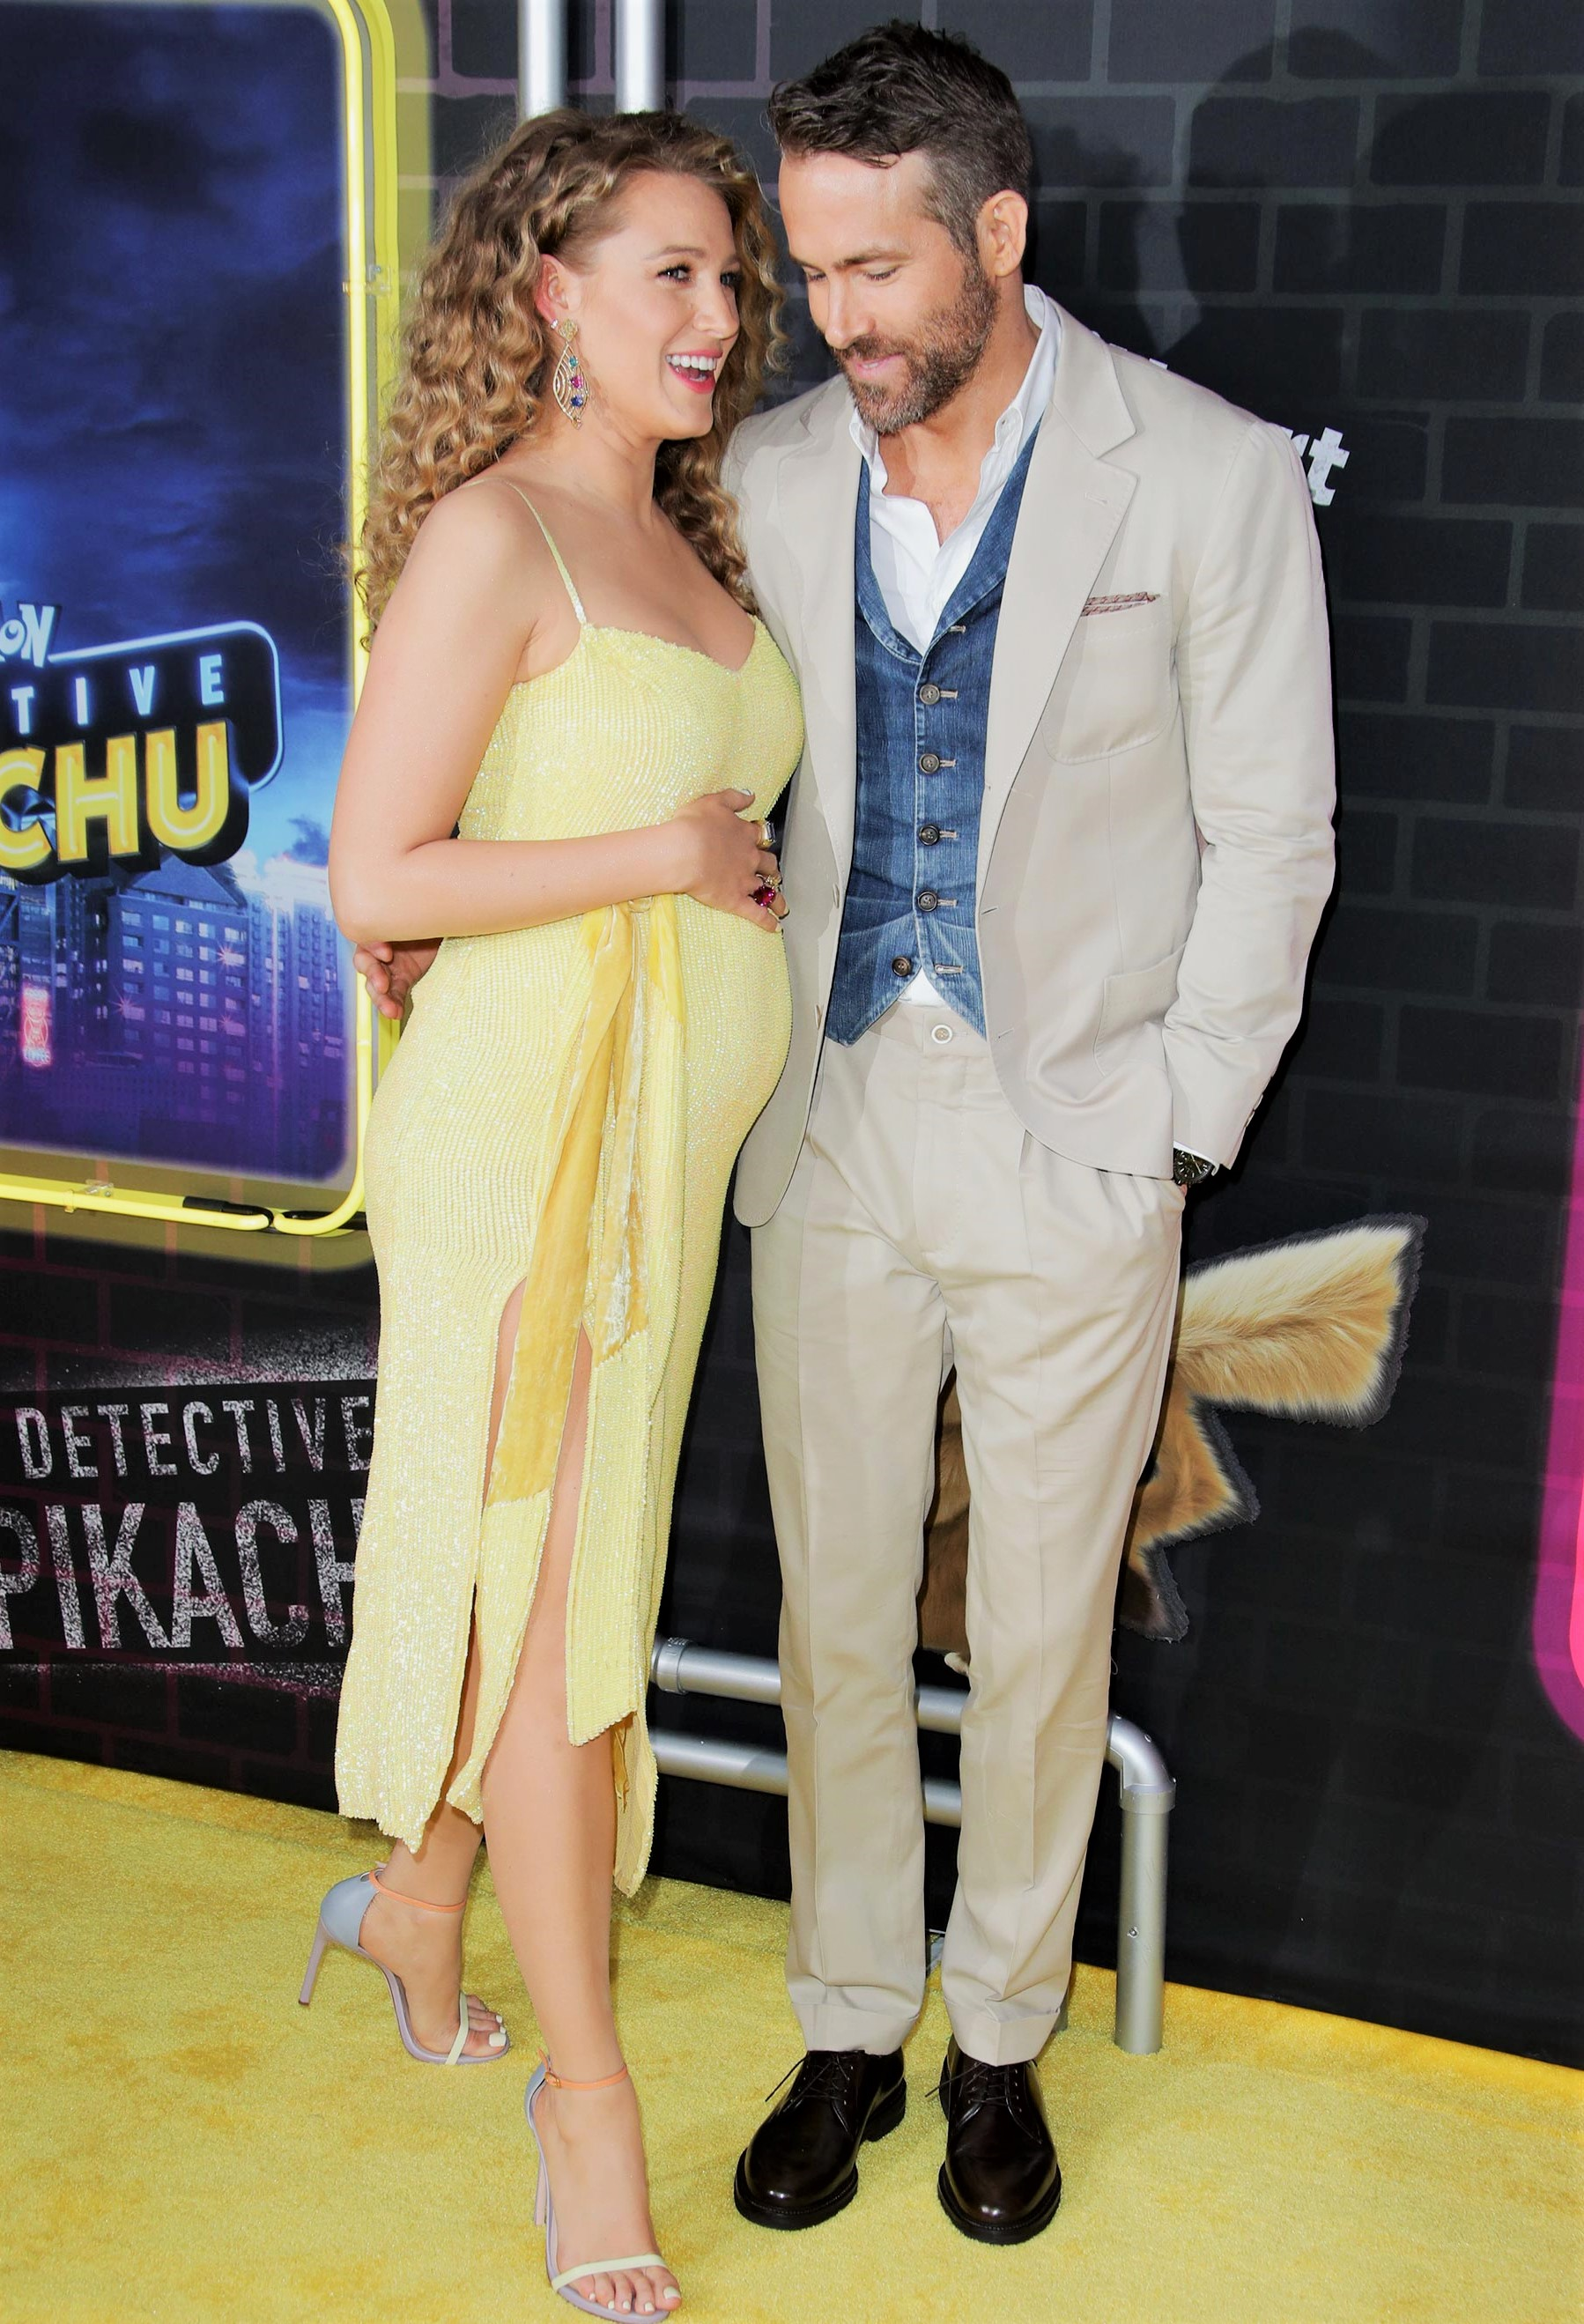 Pregnant Blake Lively and Ryan Reynolds Pokemon Detective Pikachu Movie Premiere